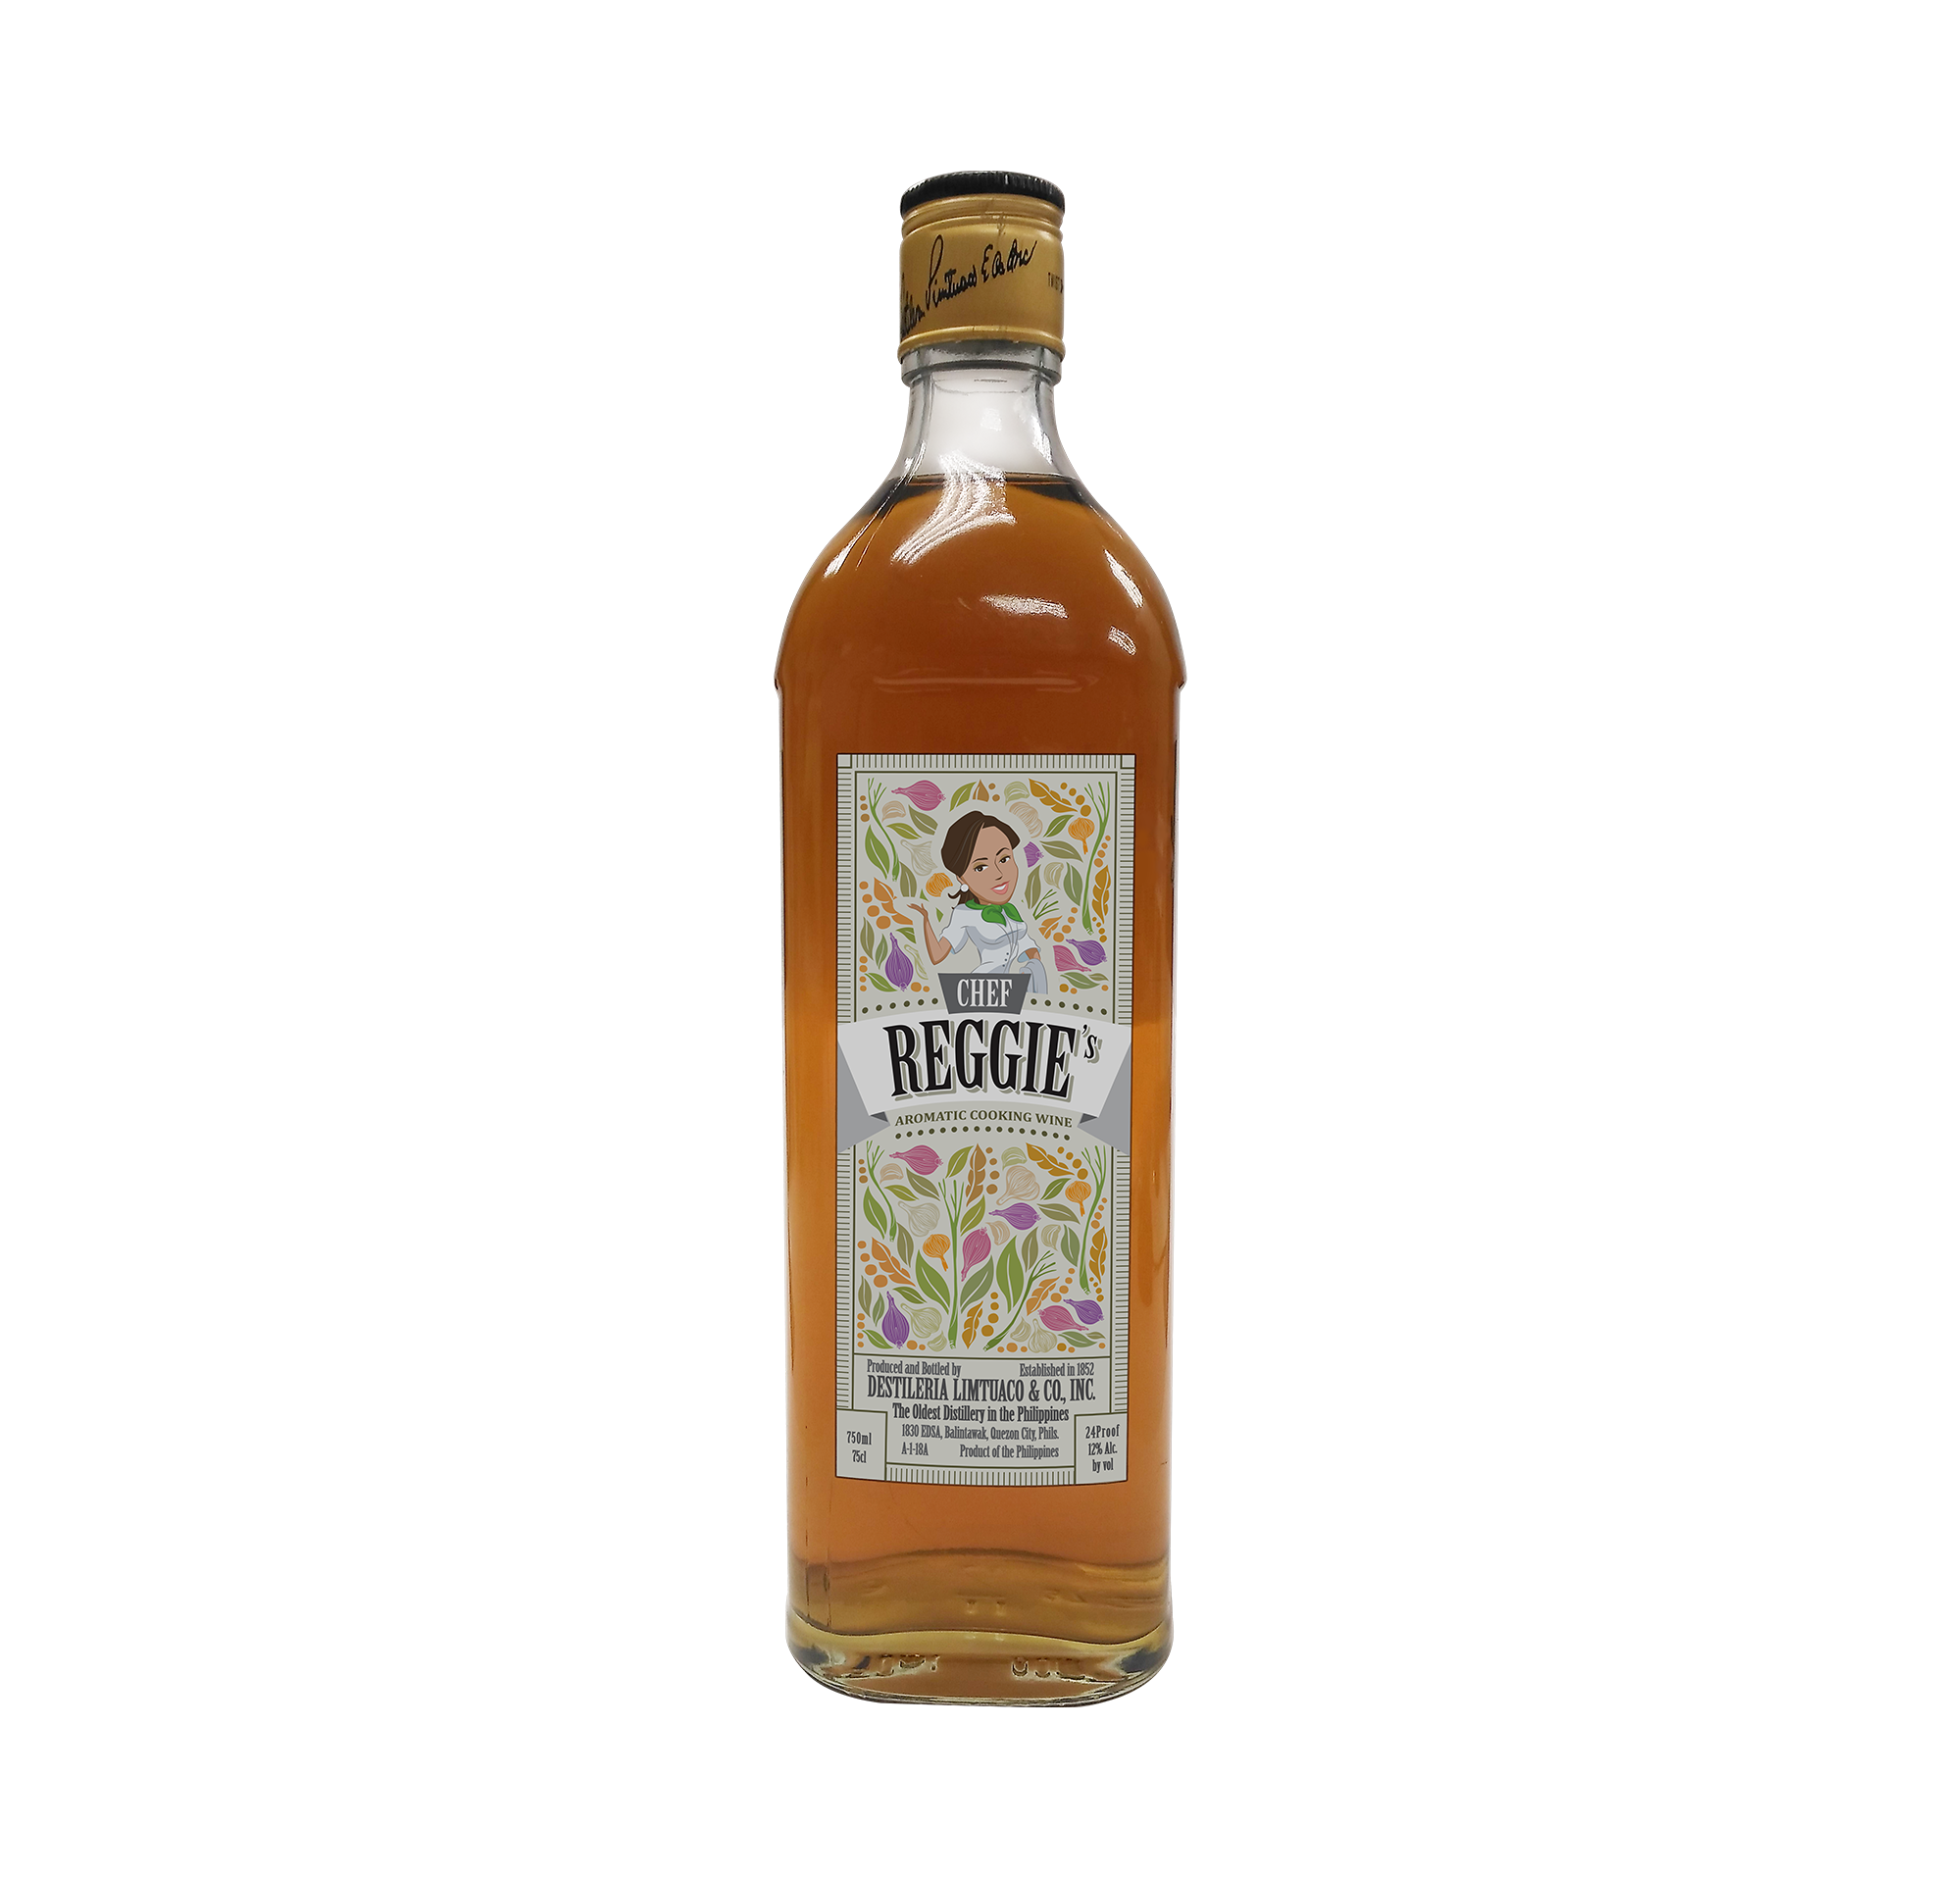 Chef Reggie's Aromatic Seasoning Wine bottled exclusively by Destileria Limtuaco